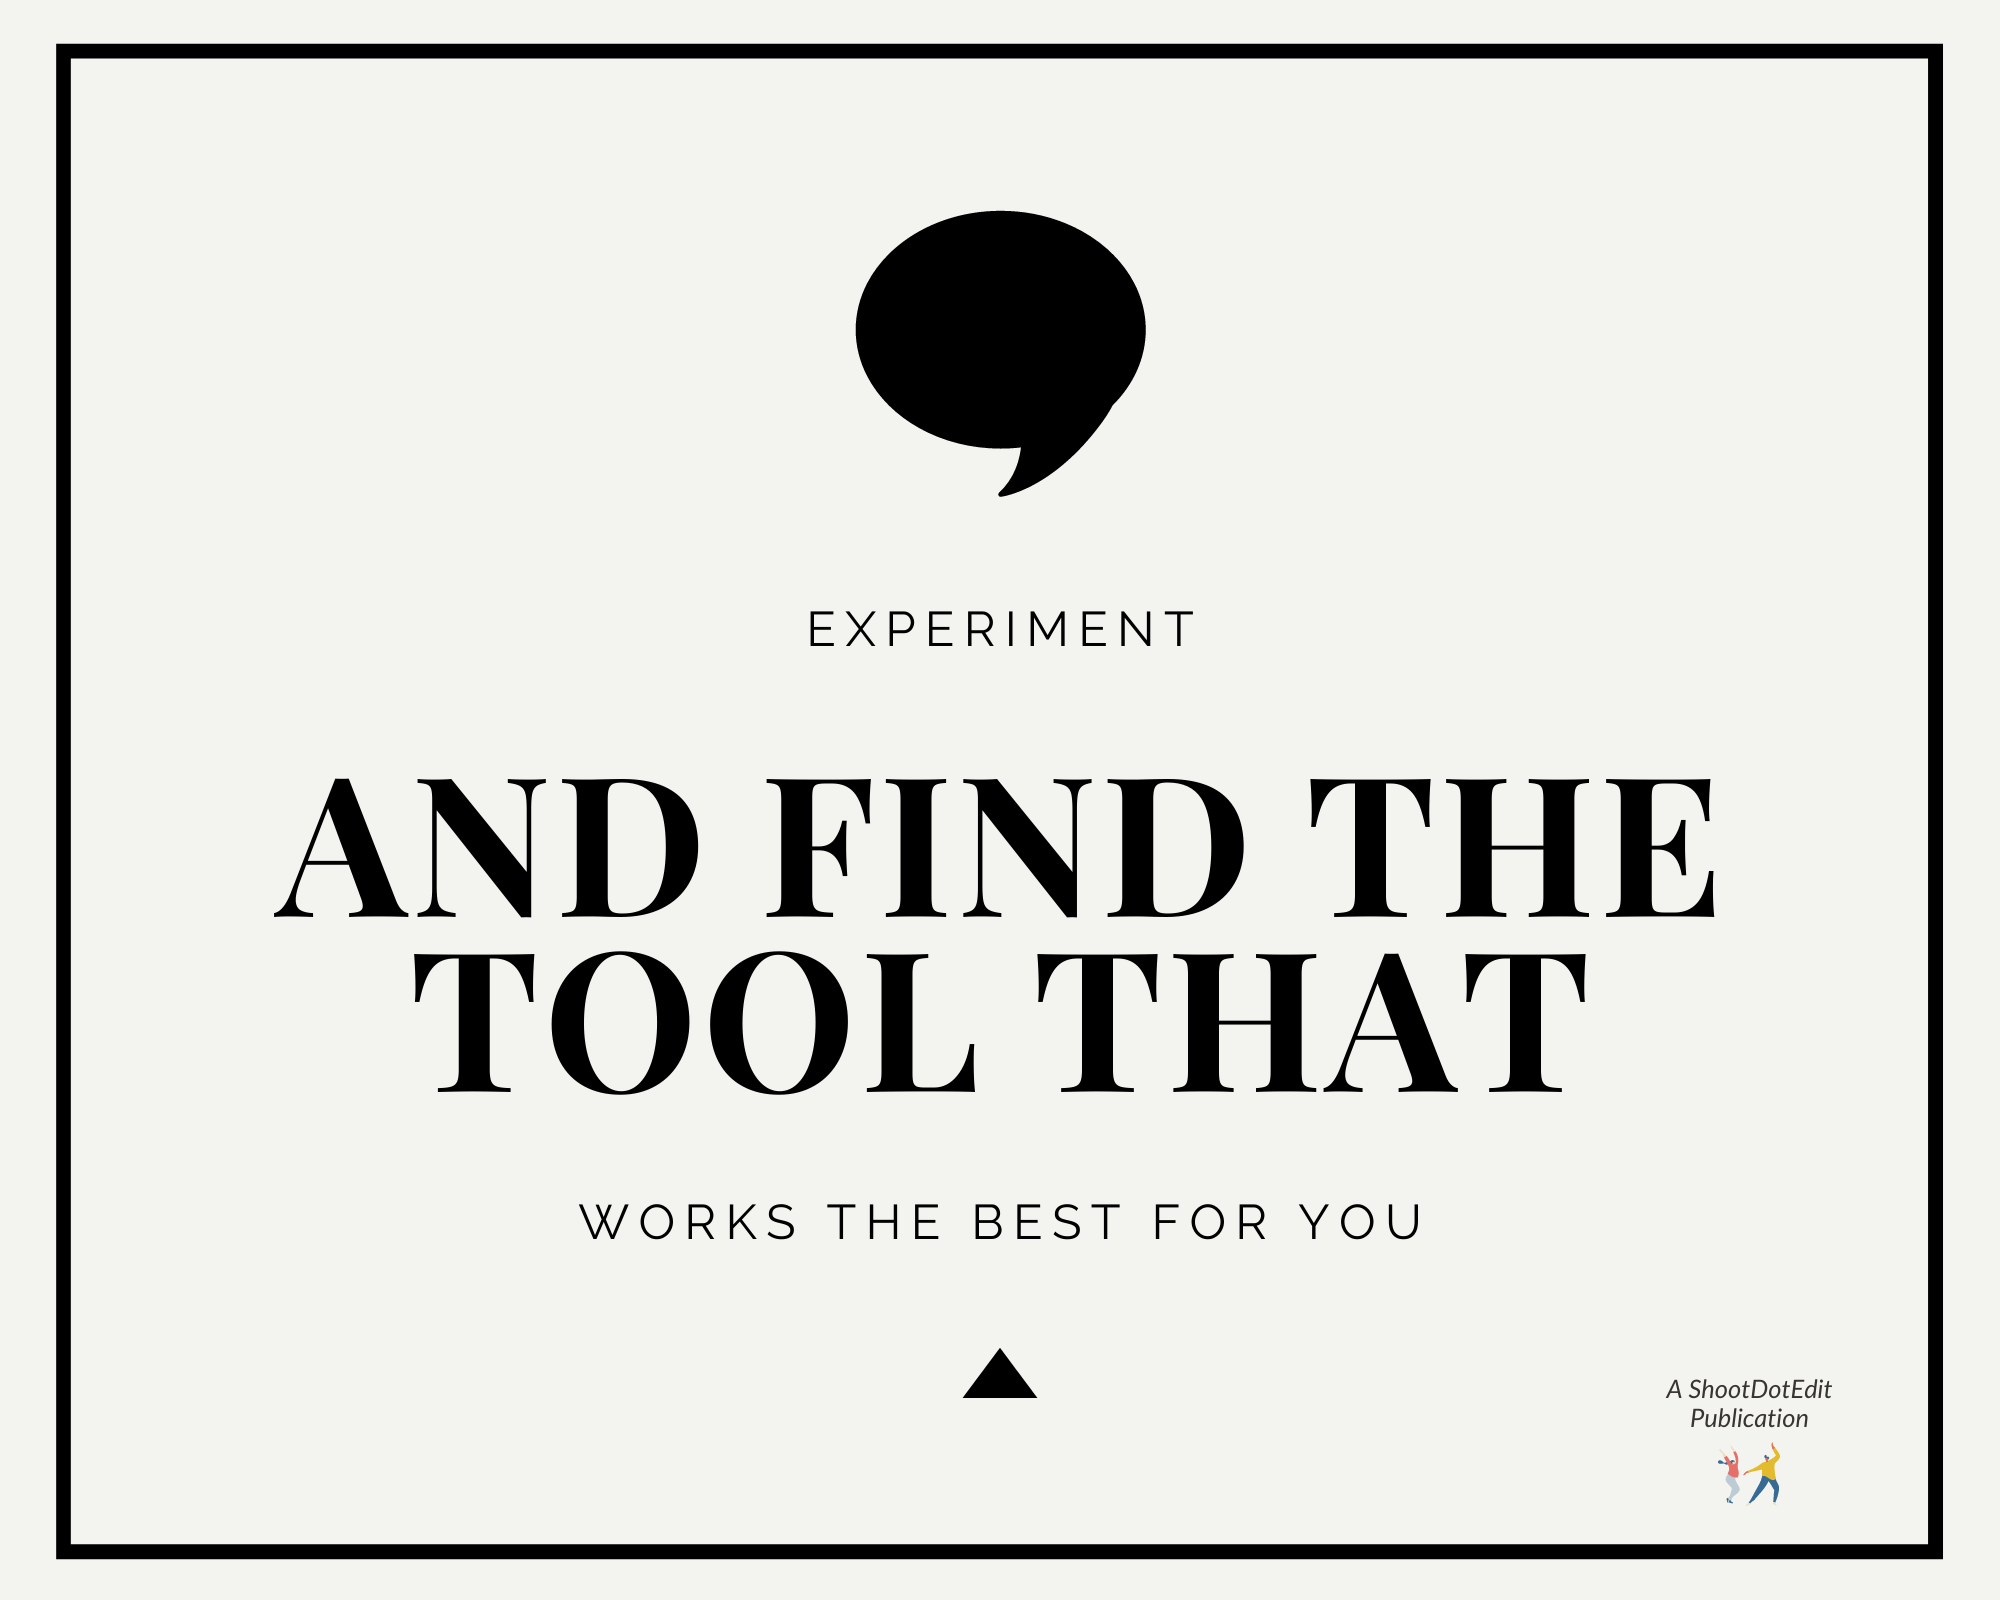 Infographic stating experiment and find the tool that works the best for you